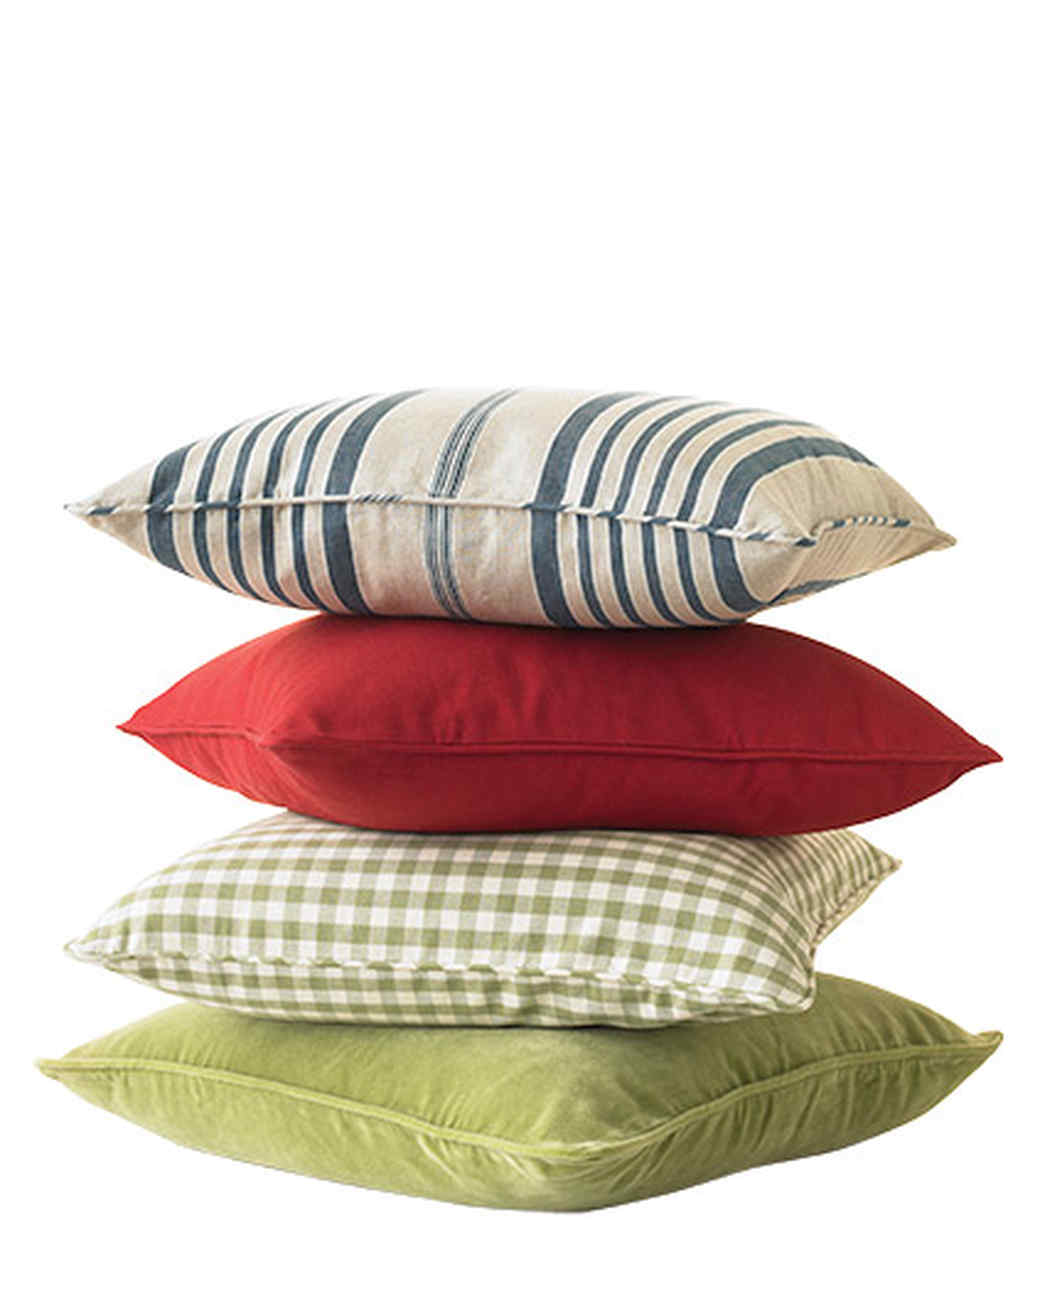 mld106069_0910_pillows02.jpg